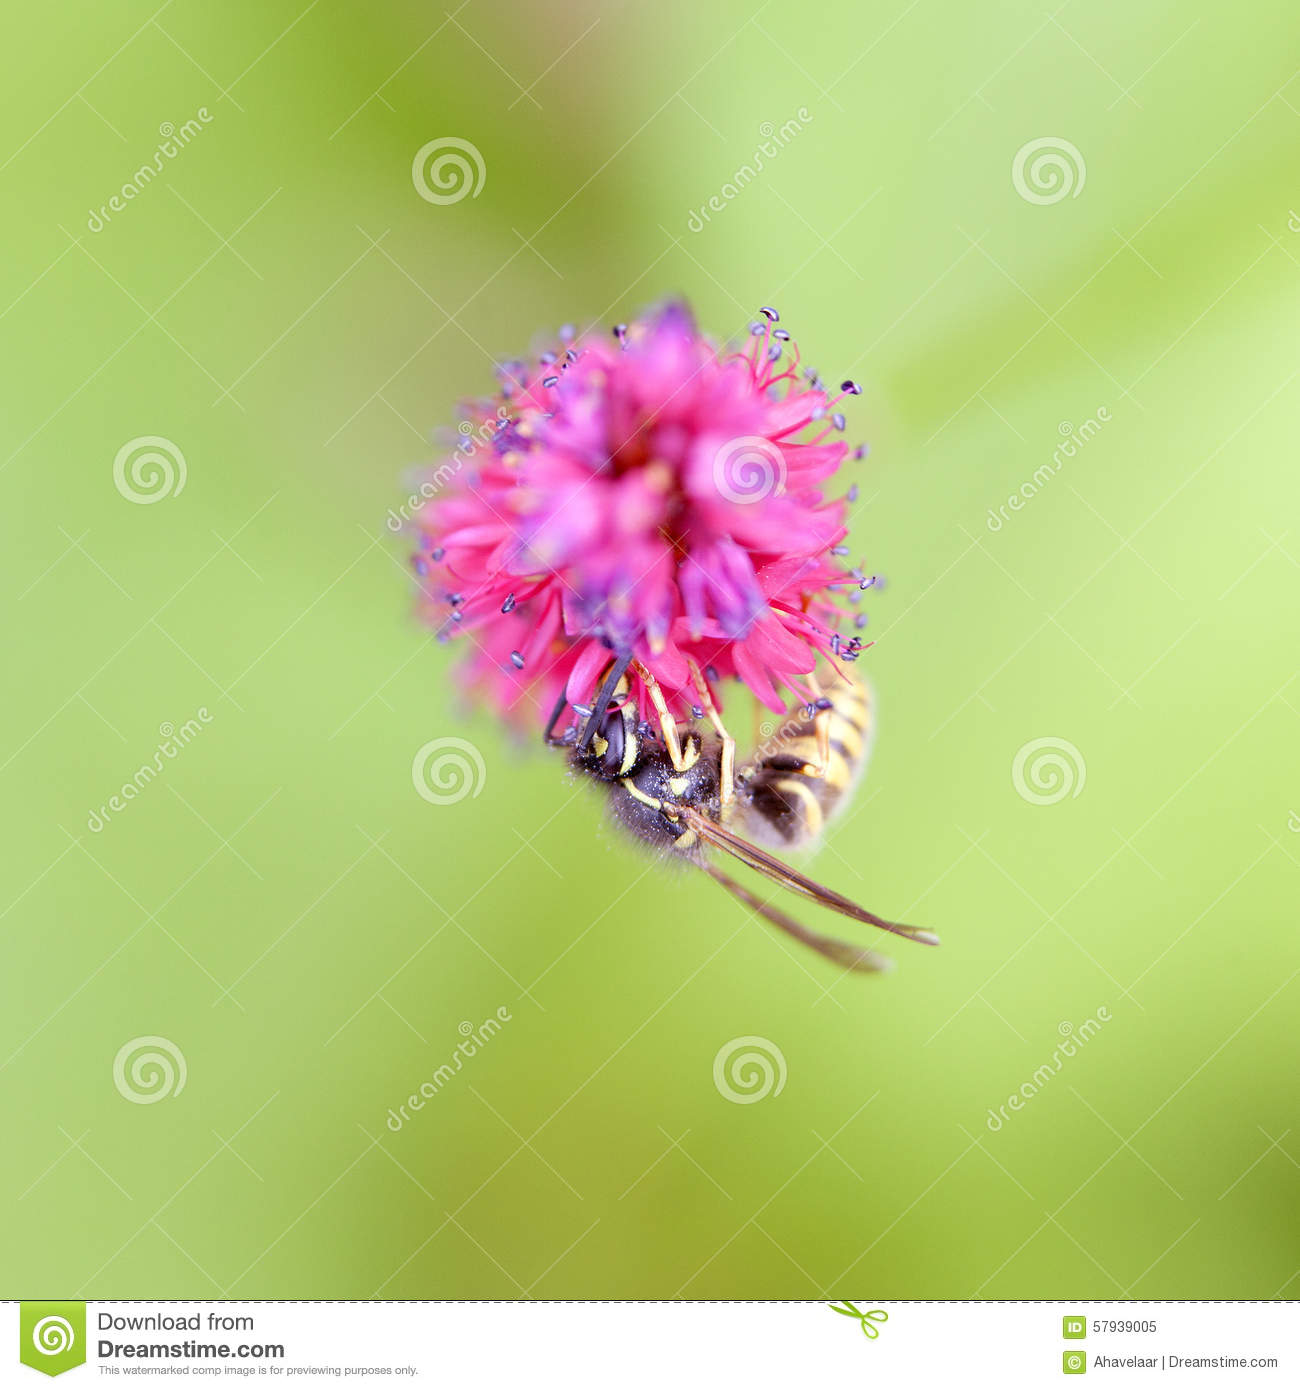 Black Flower Wasp From Australia: Wasp On Pink Flower Of Persicaria Stock Photo